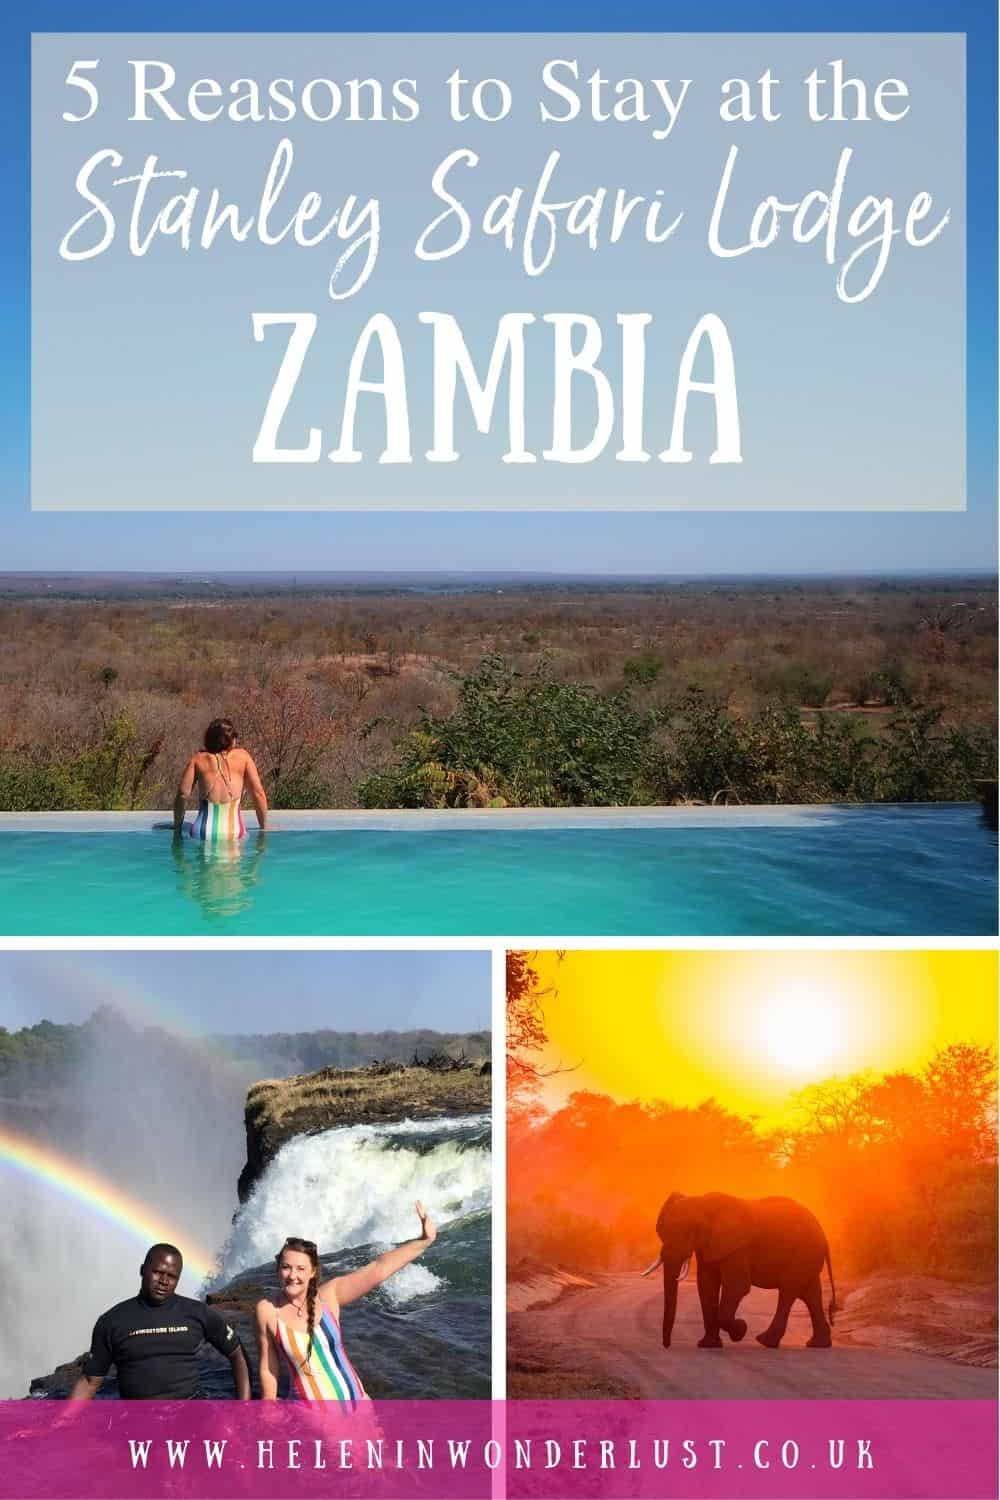 5 Reasons to Stay at the Luxurious Stanley Safari Lodge in Livingstone, Zambia